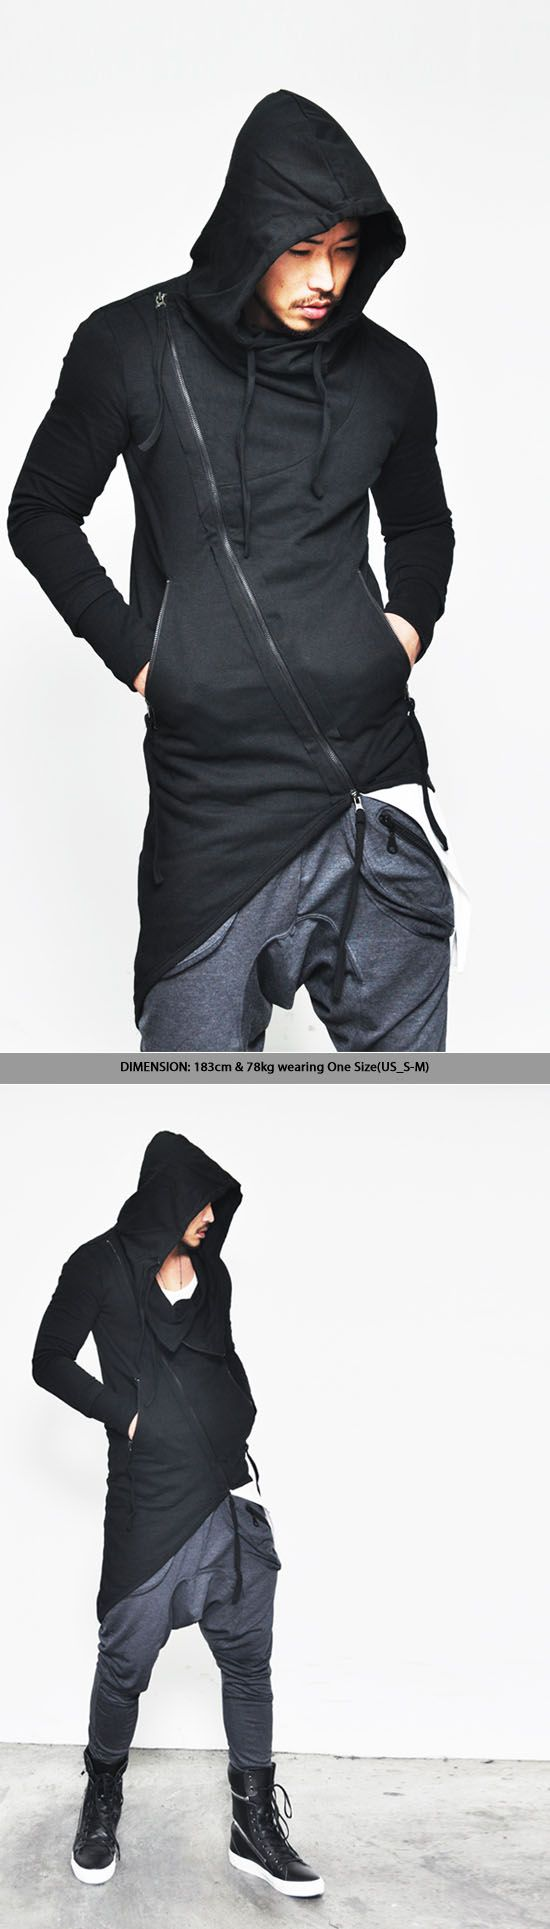 Outerwear :: Jackets :: Asymmetric Unbalance Haute Couture Hooded-Jacket 48 - Mens Fashion Clothing For An Attractive Guy Look